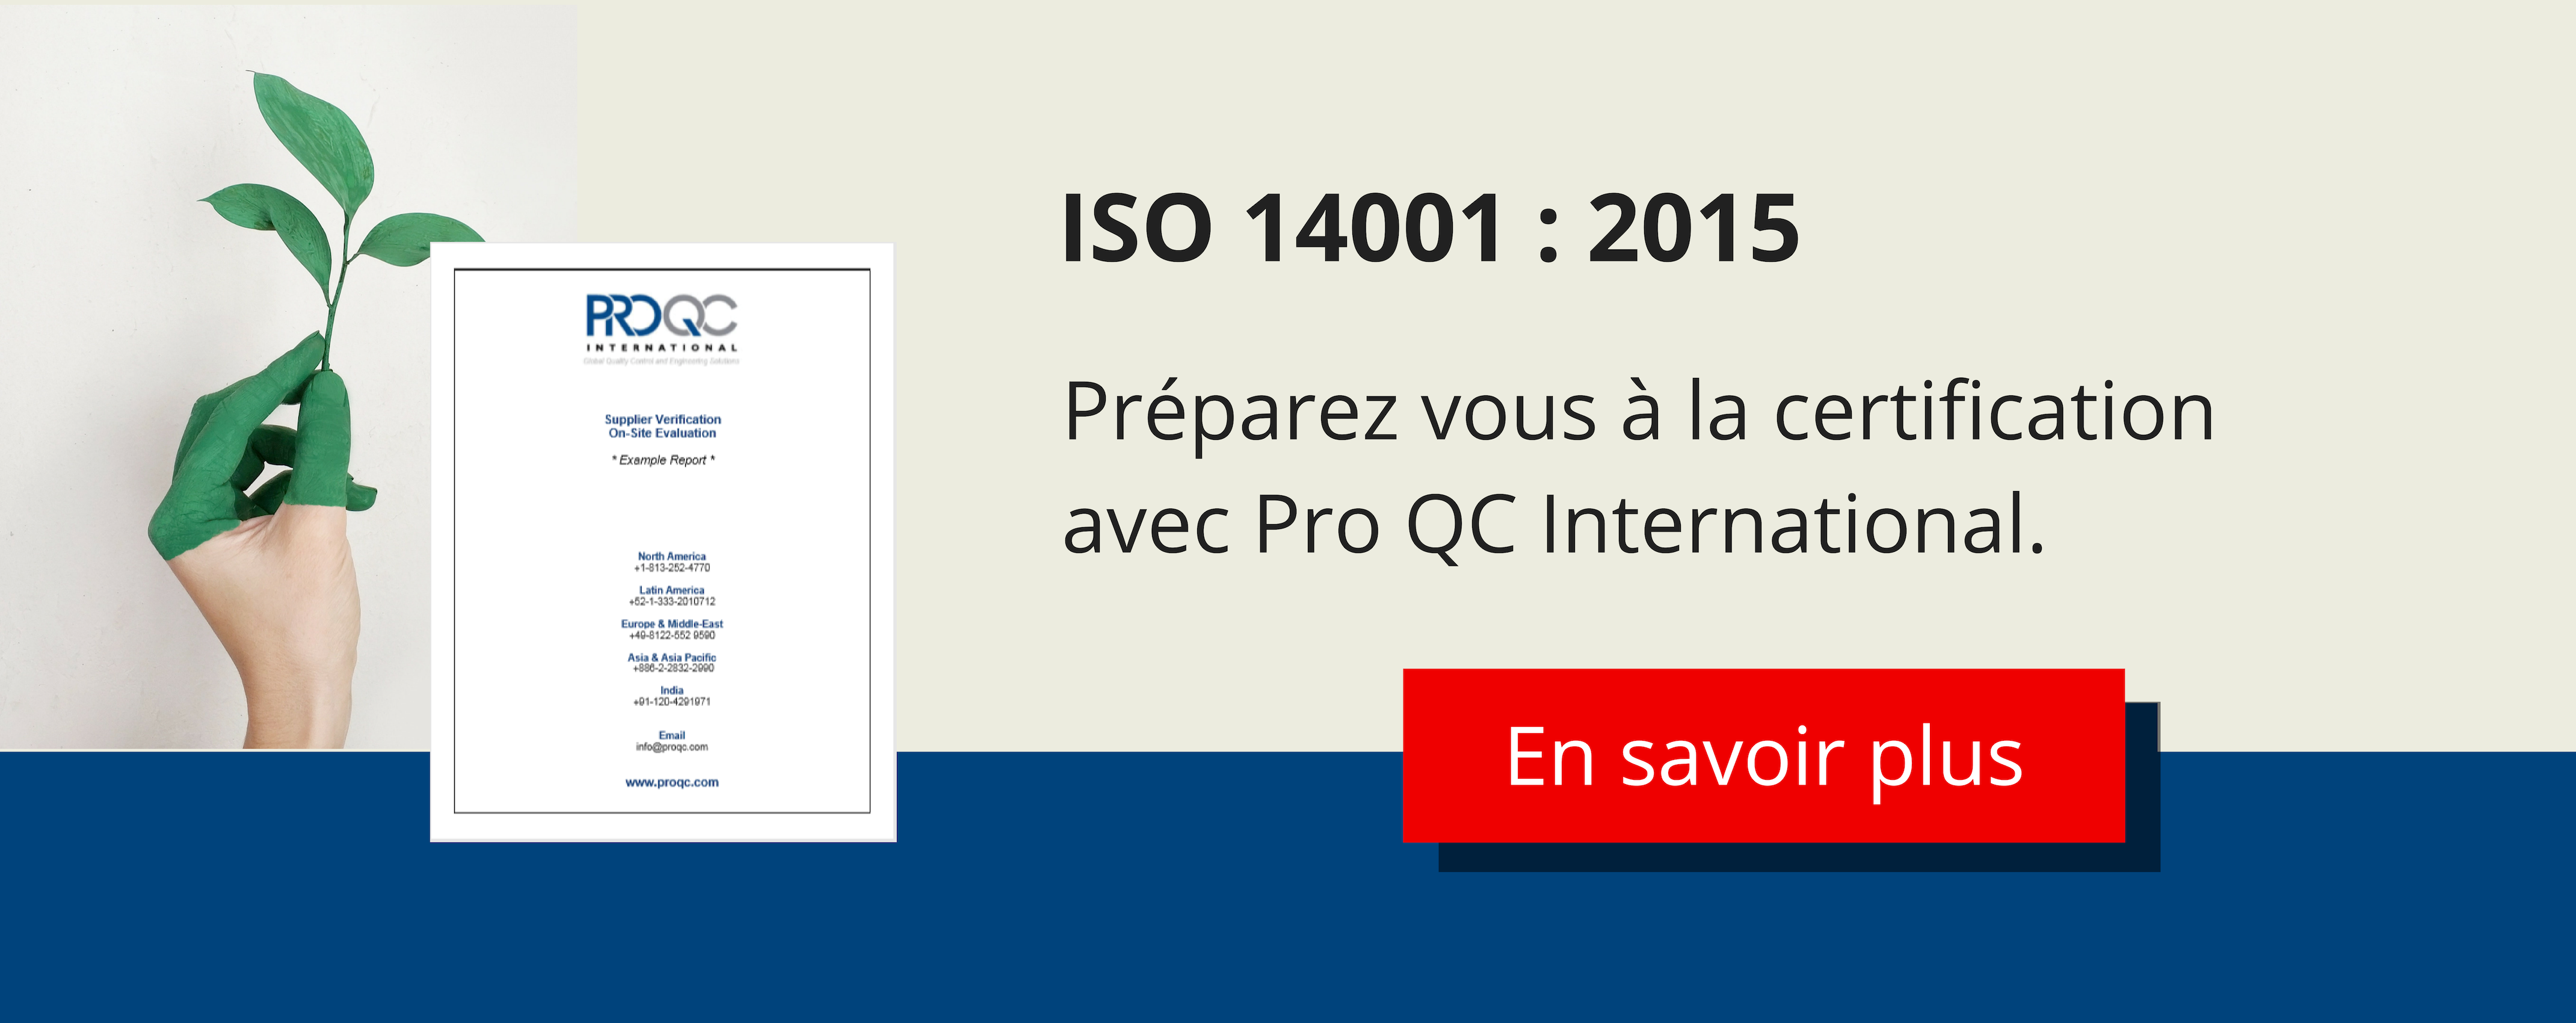 audit-iso-14001-certification